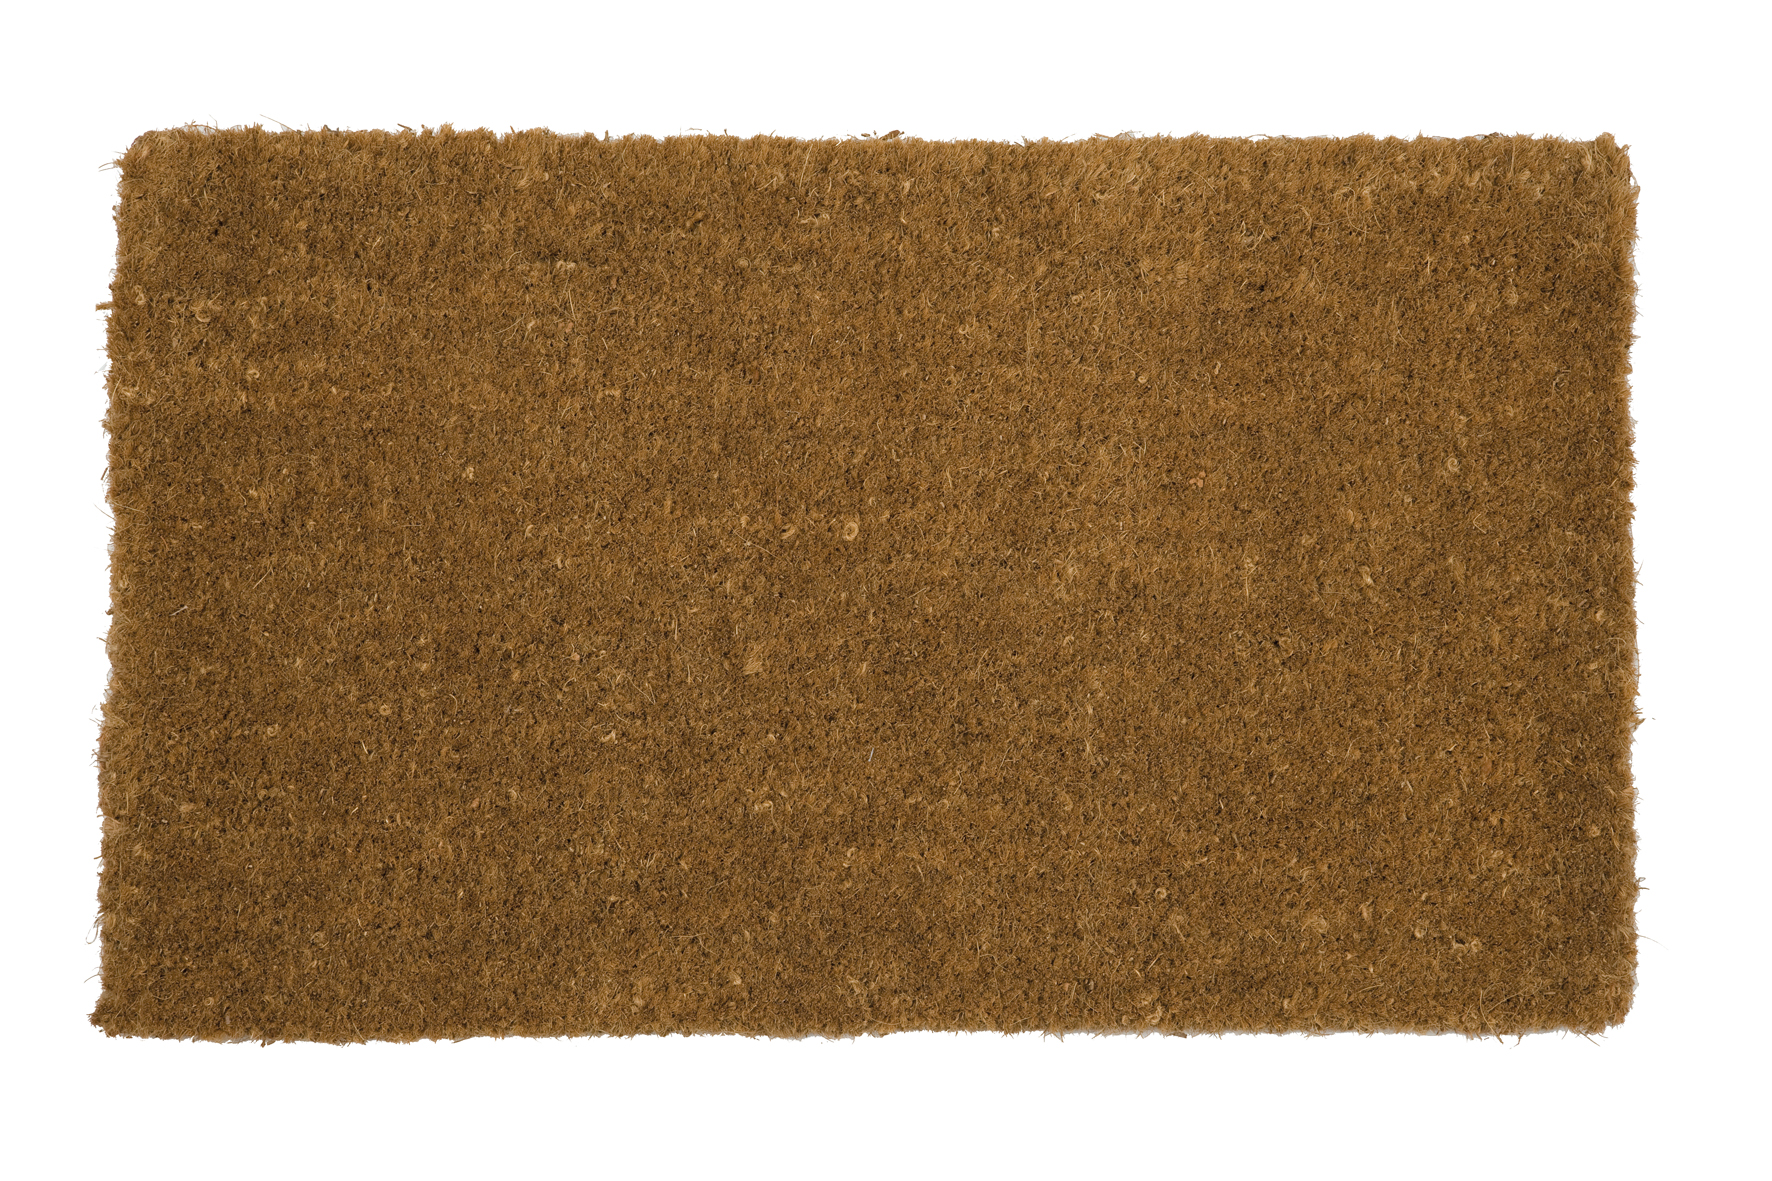 Nayland Hand Woven Natural Coir Doormat Traditional ...